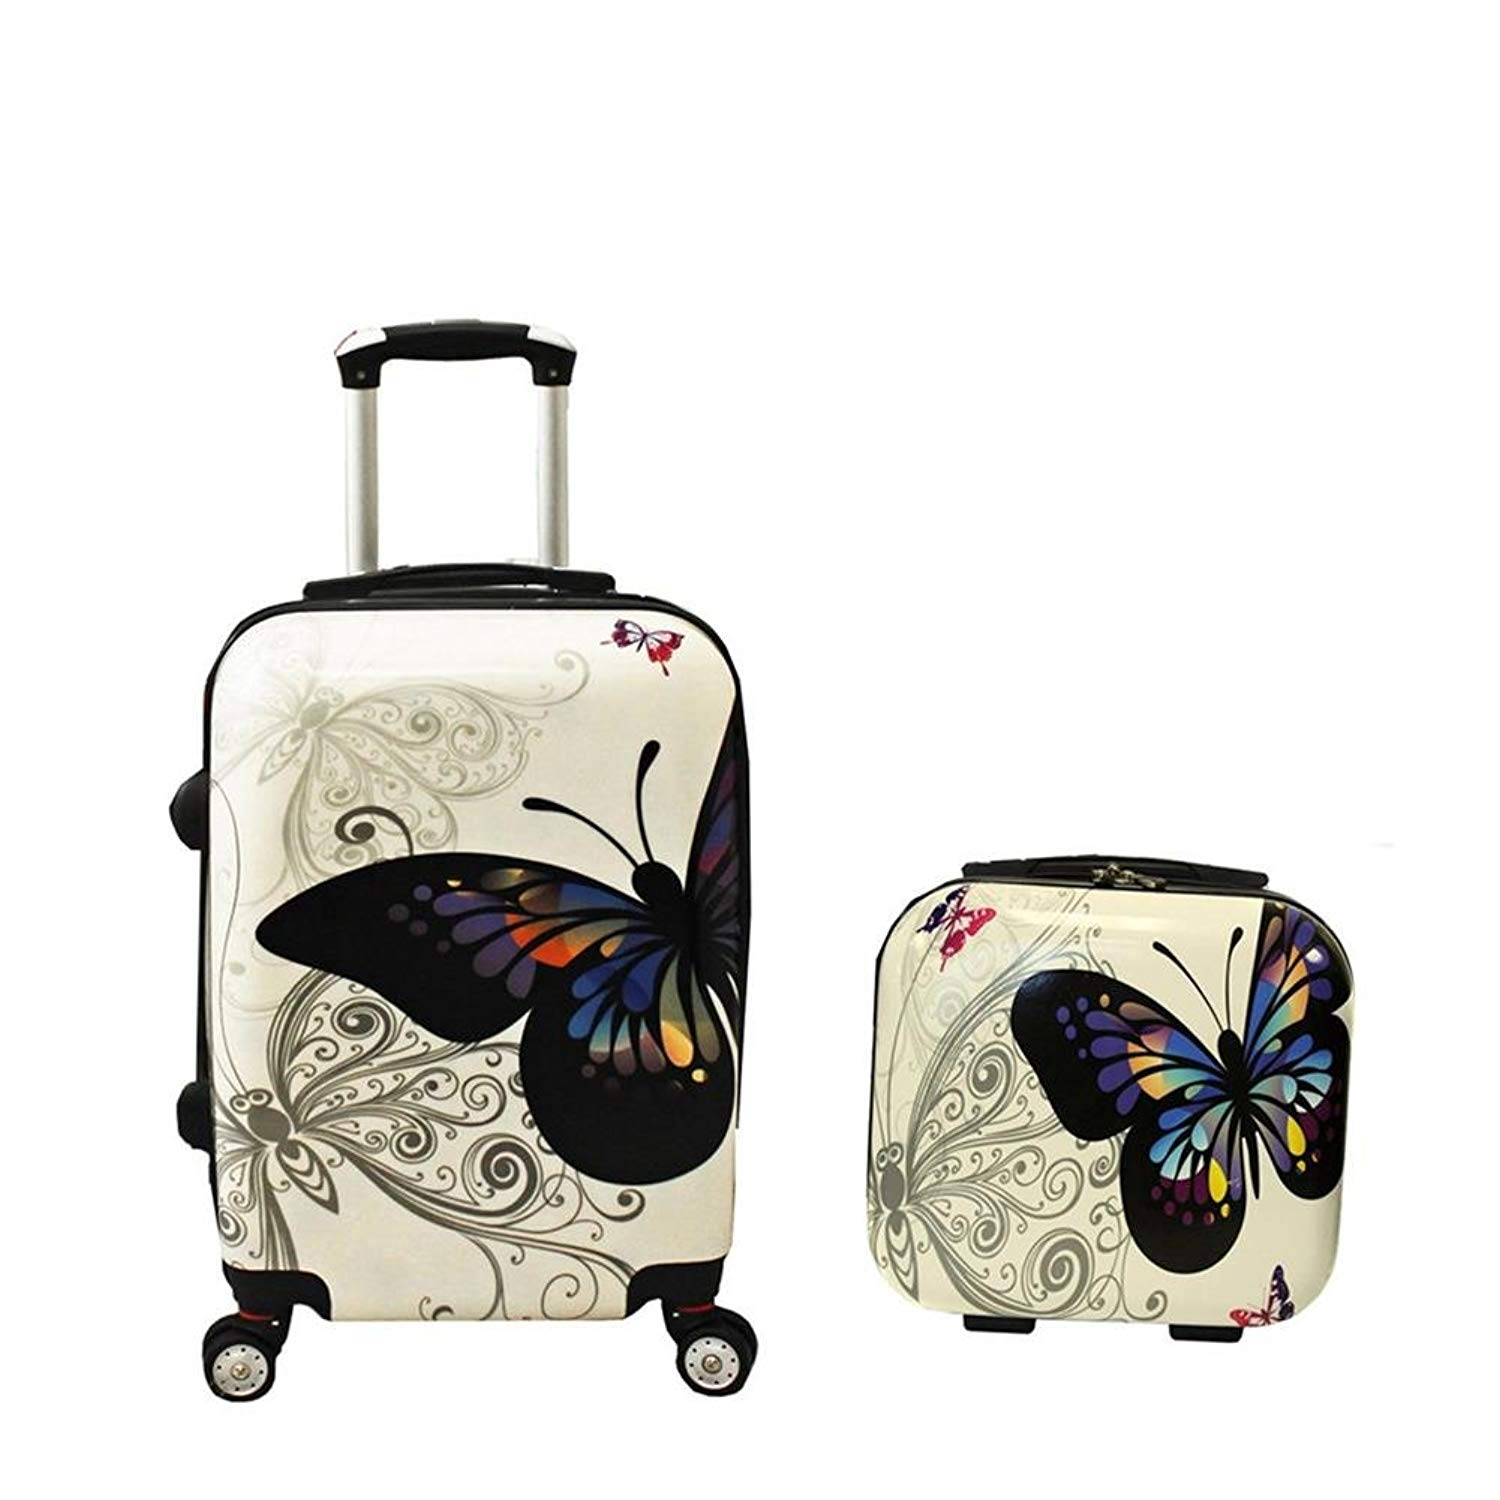 Insun Luggage 2 Piece Carry On Spinner Hardside Upright Wheel Sets